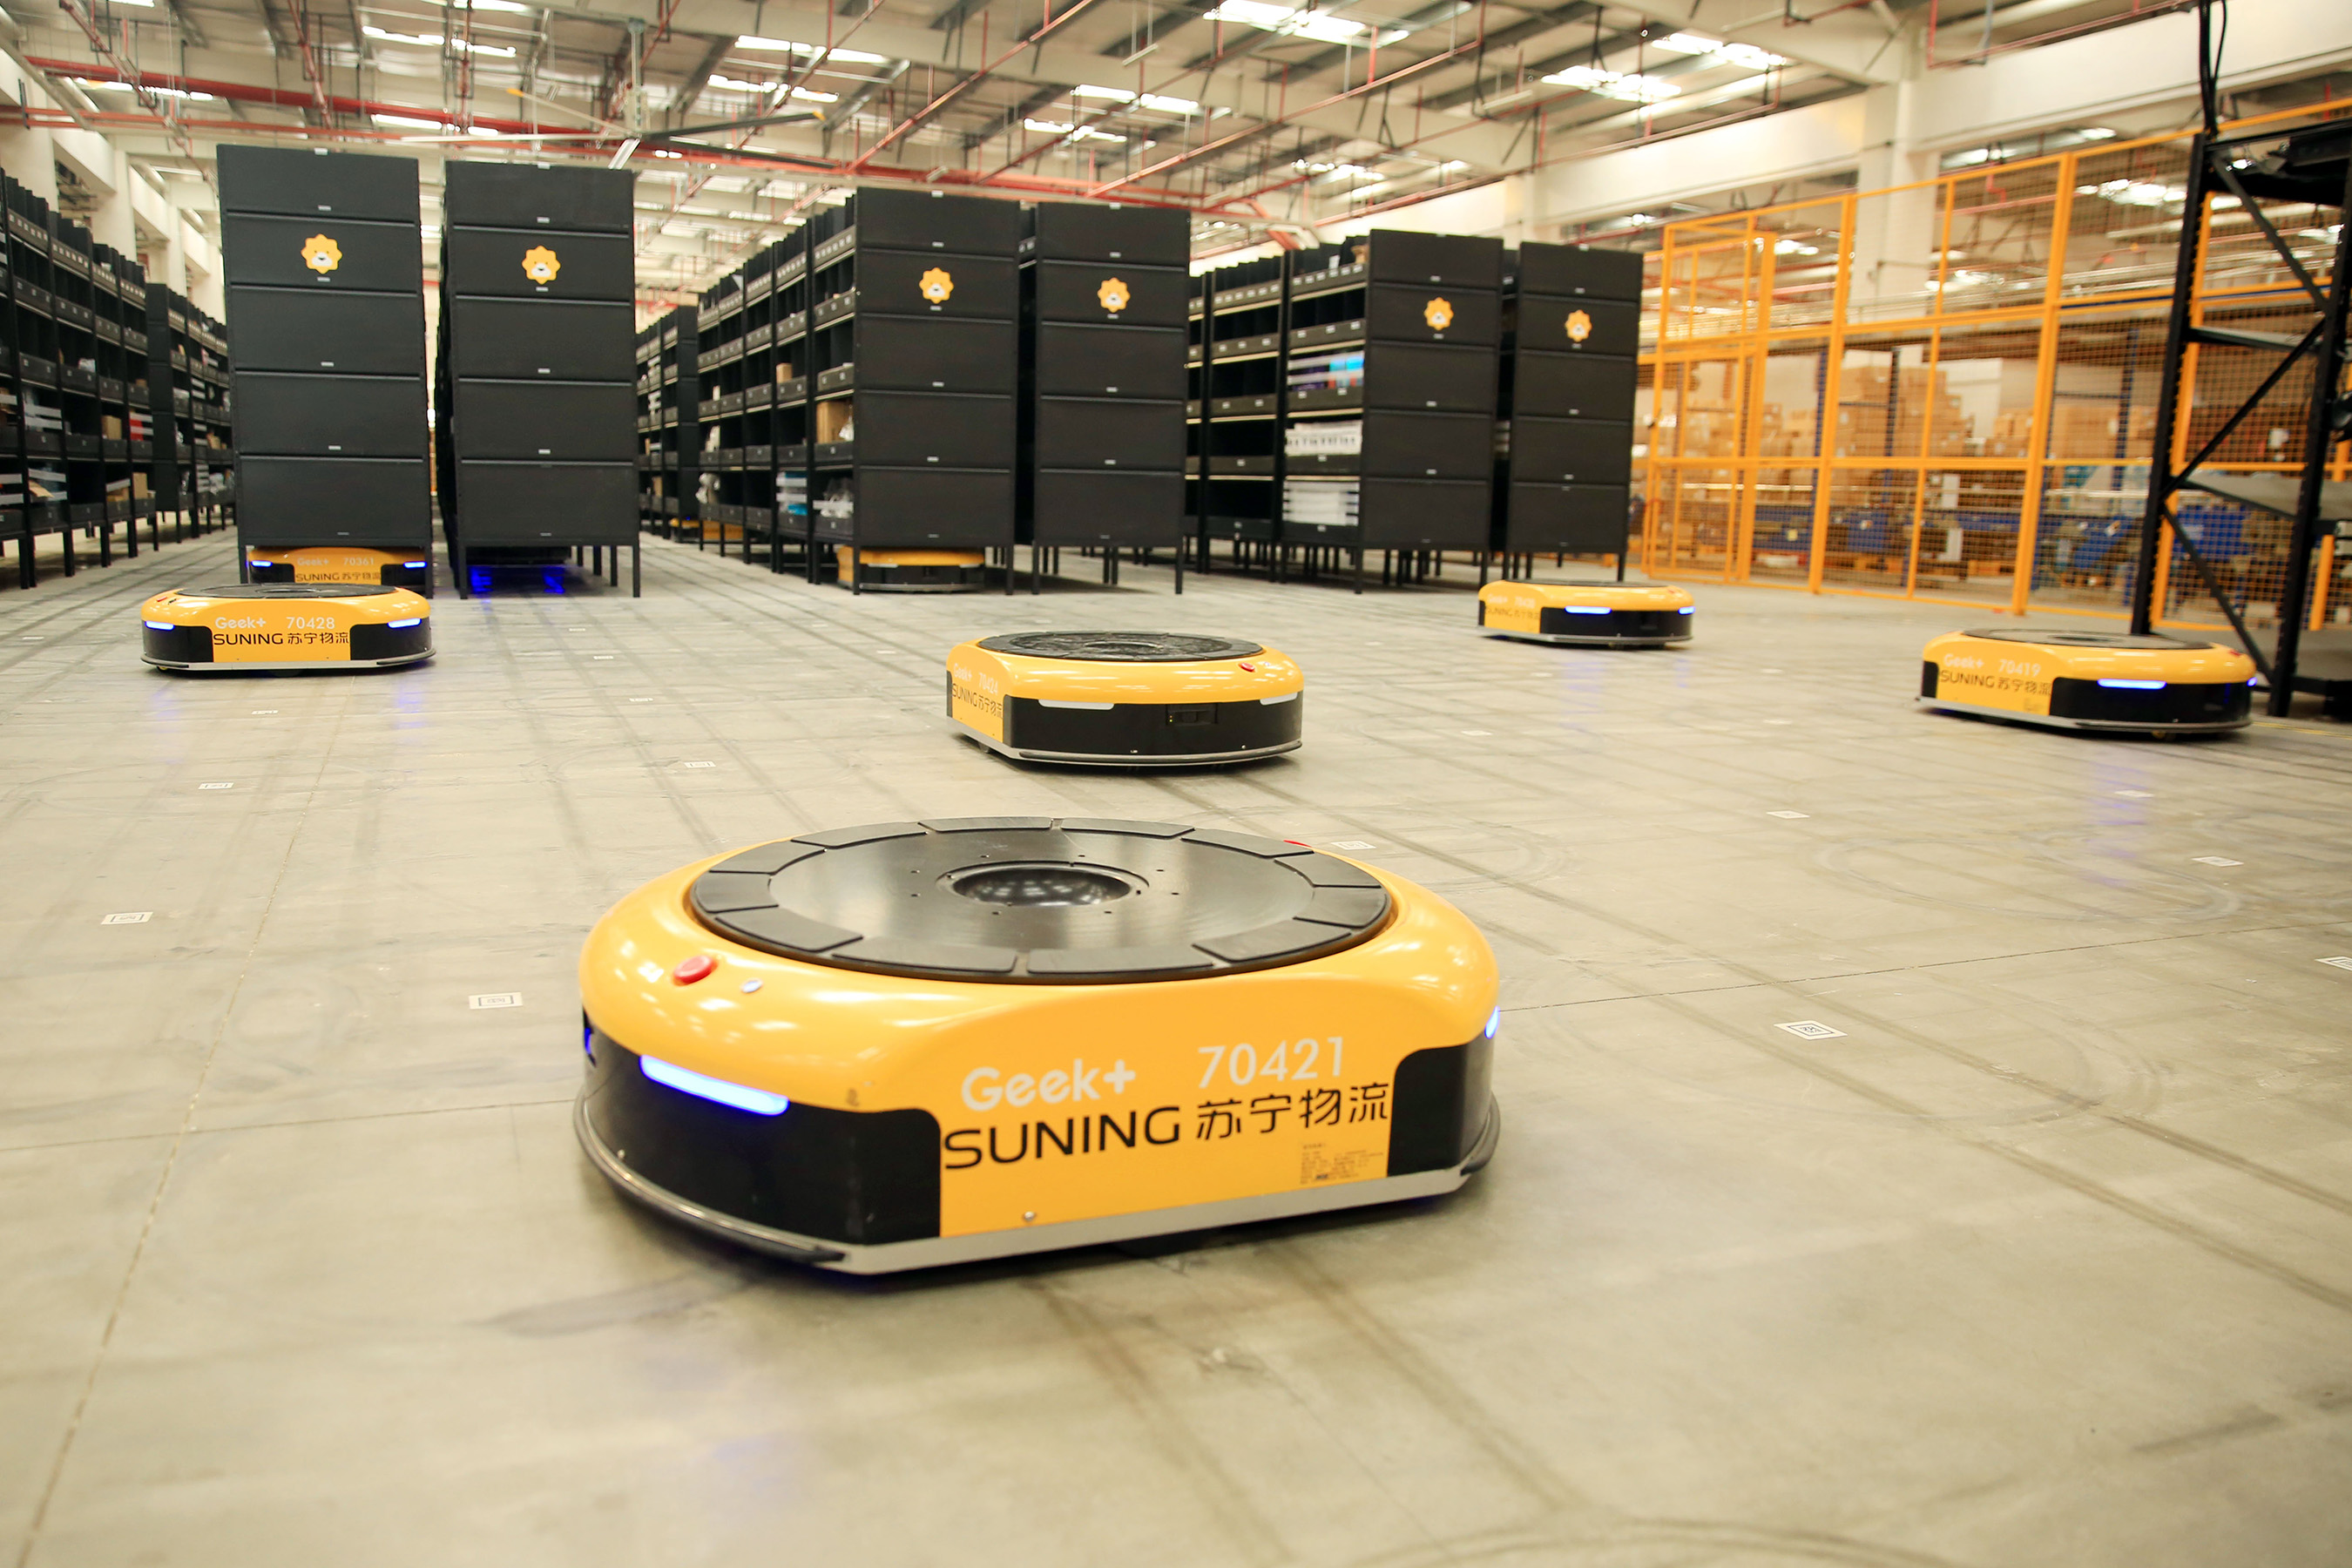 The Suning AGV robot is jointly developed by Suning Logistics S-Lab and Geek+.